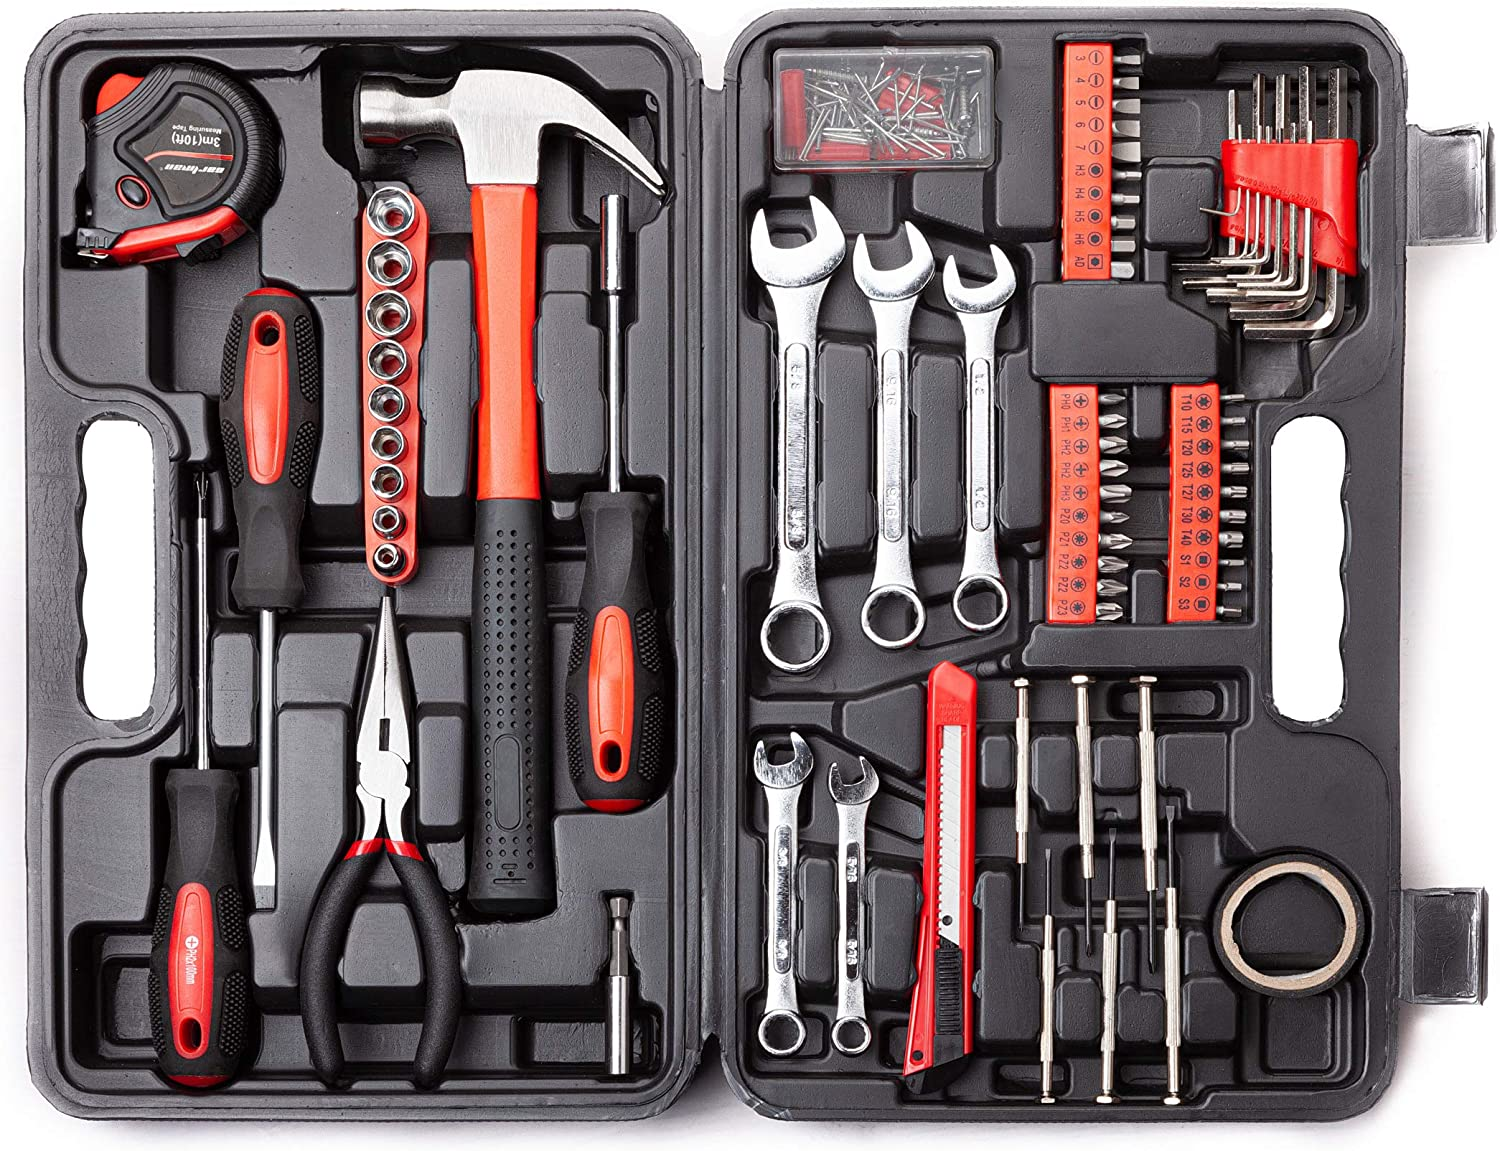 A toolbox filled with useful equipment for any RV packing list